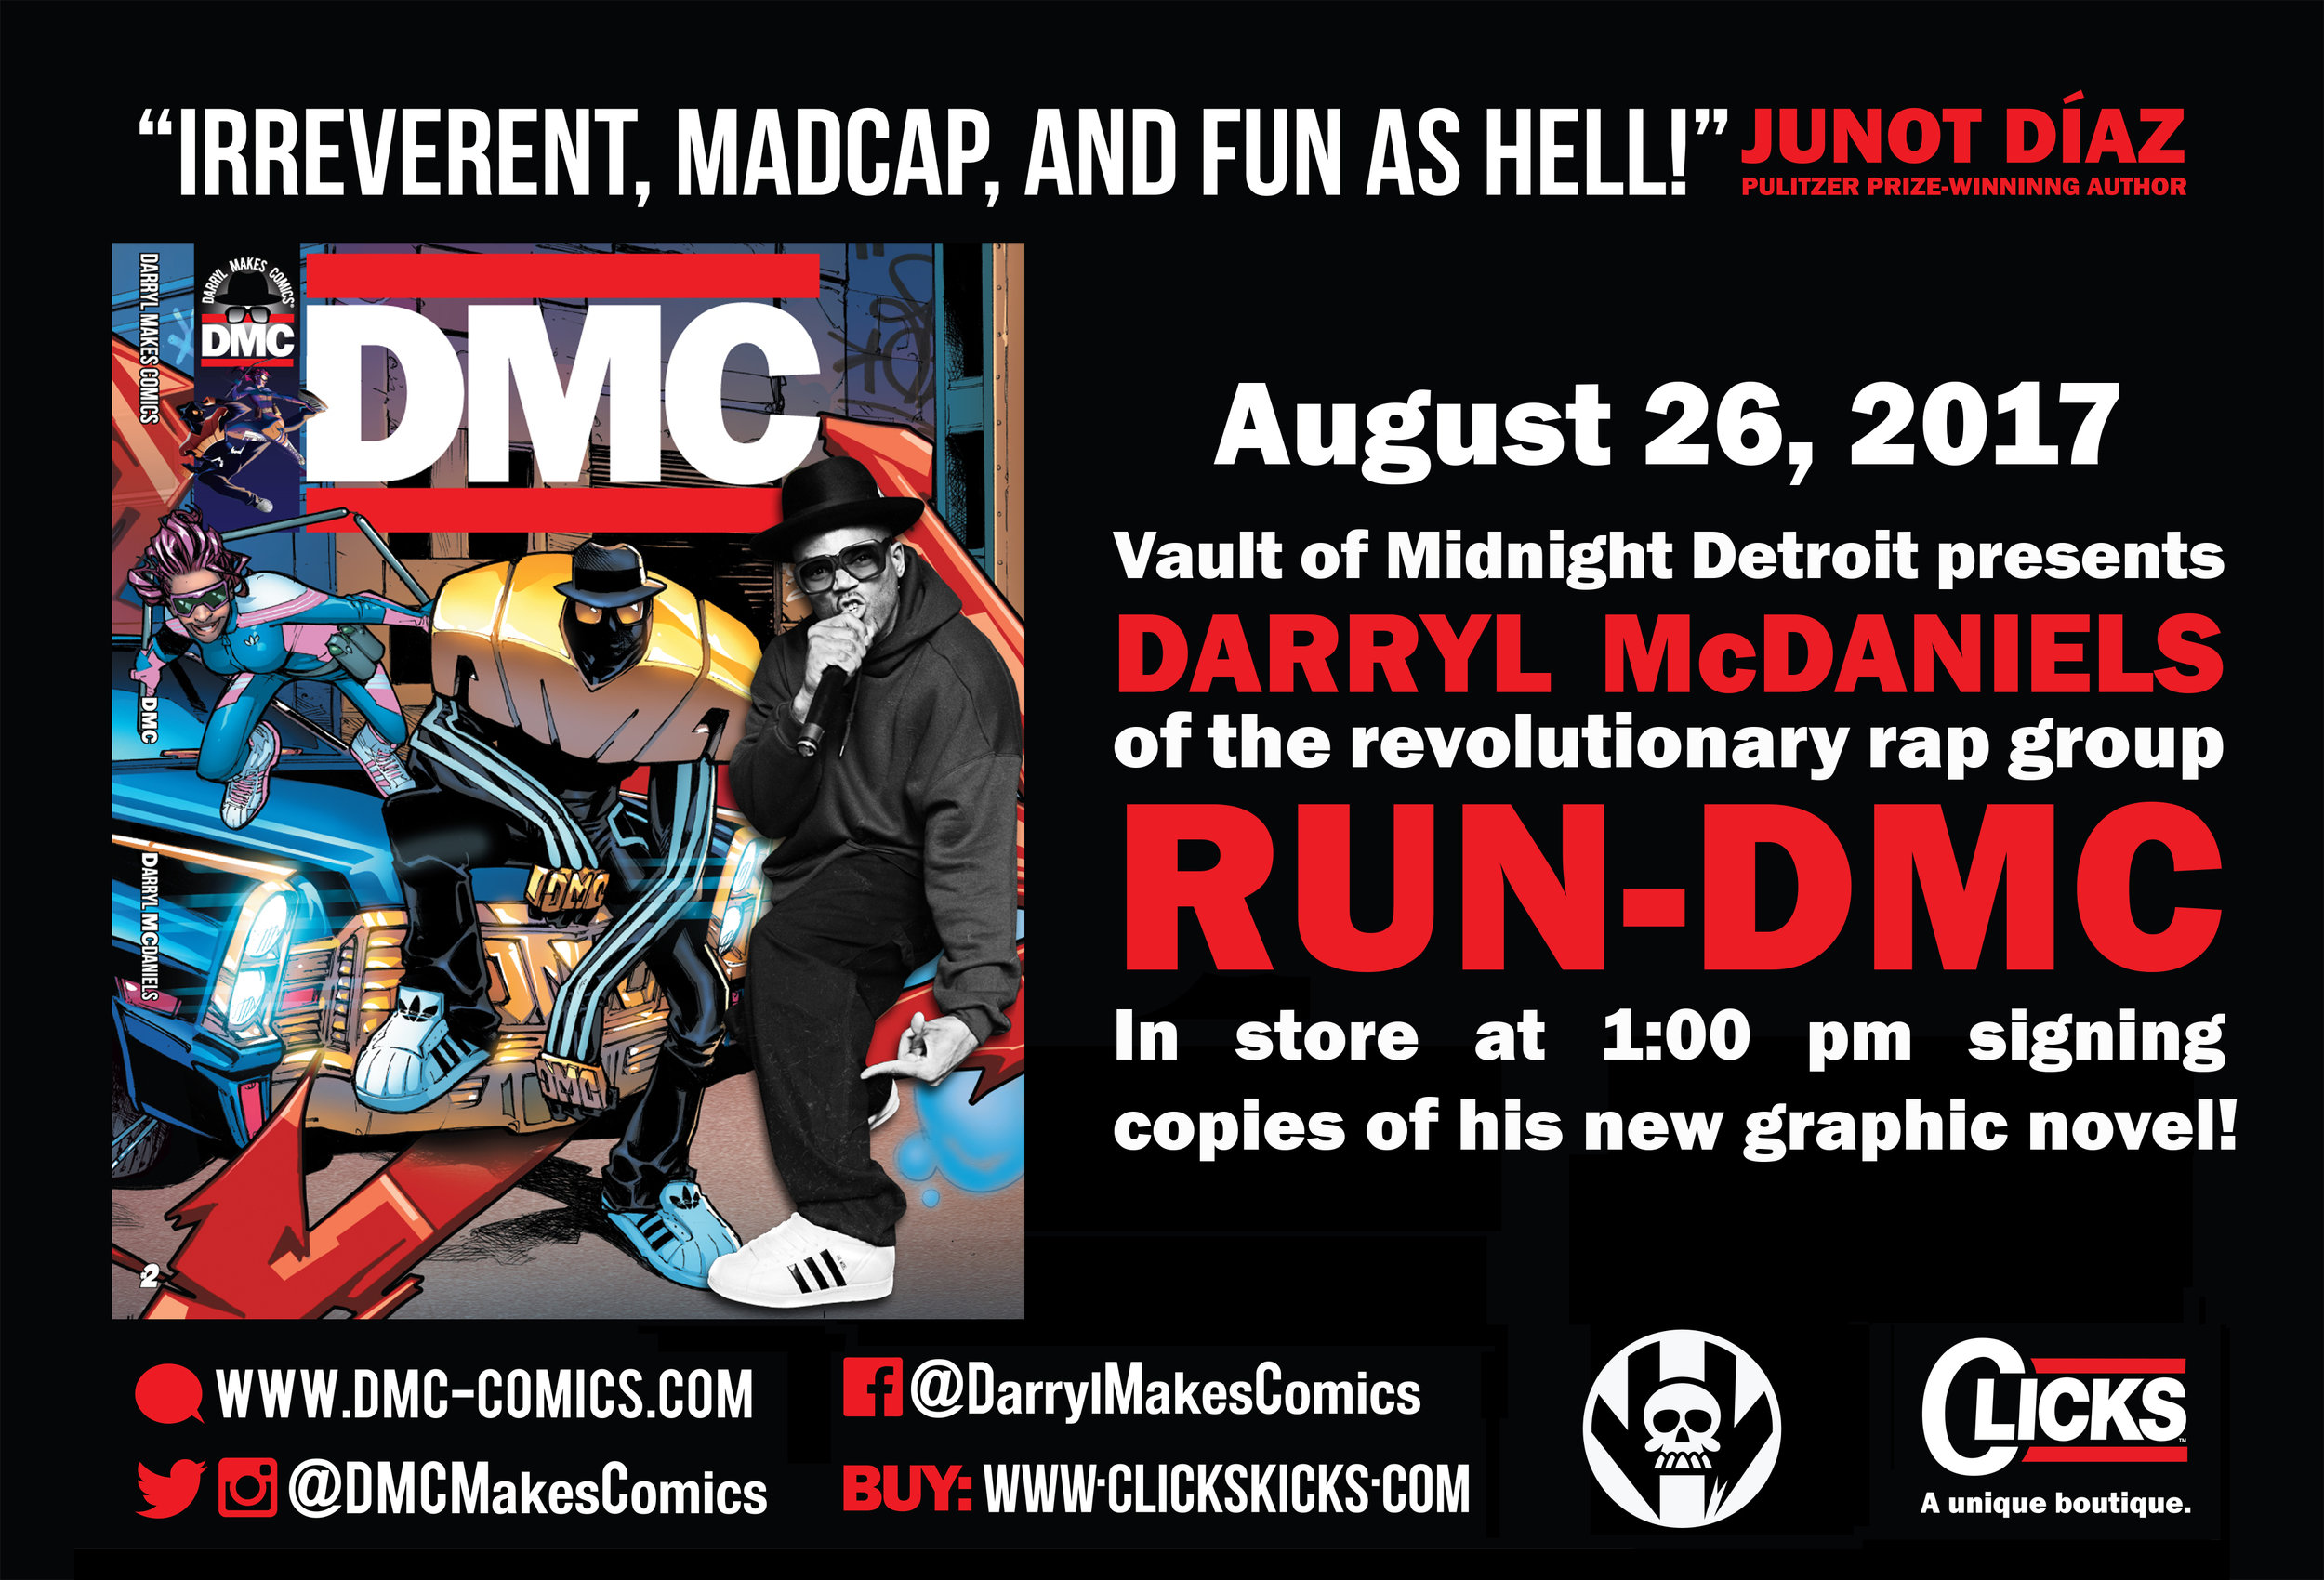 """Vault of Midnight Detroit is more than excited to host multi-platinum recording artist, hip hop pioneer, and founding member of Run-DMC, Darryl McDaniels! Saturday August 26th, Darryl McDaniels will be in-store at Vault of Midnight Detroit from 1:00 pm to 3:00 pm signing copies of his critically praised graphic novel """"DMC"""", which features art and writing from legendary creators such as Sal Buscema, Bill Sienkiewicz, David Walker, Greg Park, and more.  And man, that is not all. McDaniels himself will be judging a  break dancing competition  at the shop,the winner of which will receive two tickets to see Run DMC perform live at Chene Park on August 27th!  This is an opportunity you will not want to miss. Show up early and don't miss this chance to meet genuine hip-hop royalty at Vault of Midnight!"""